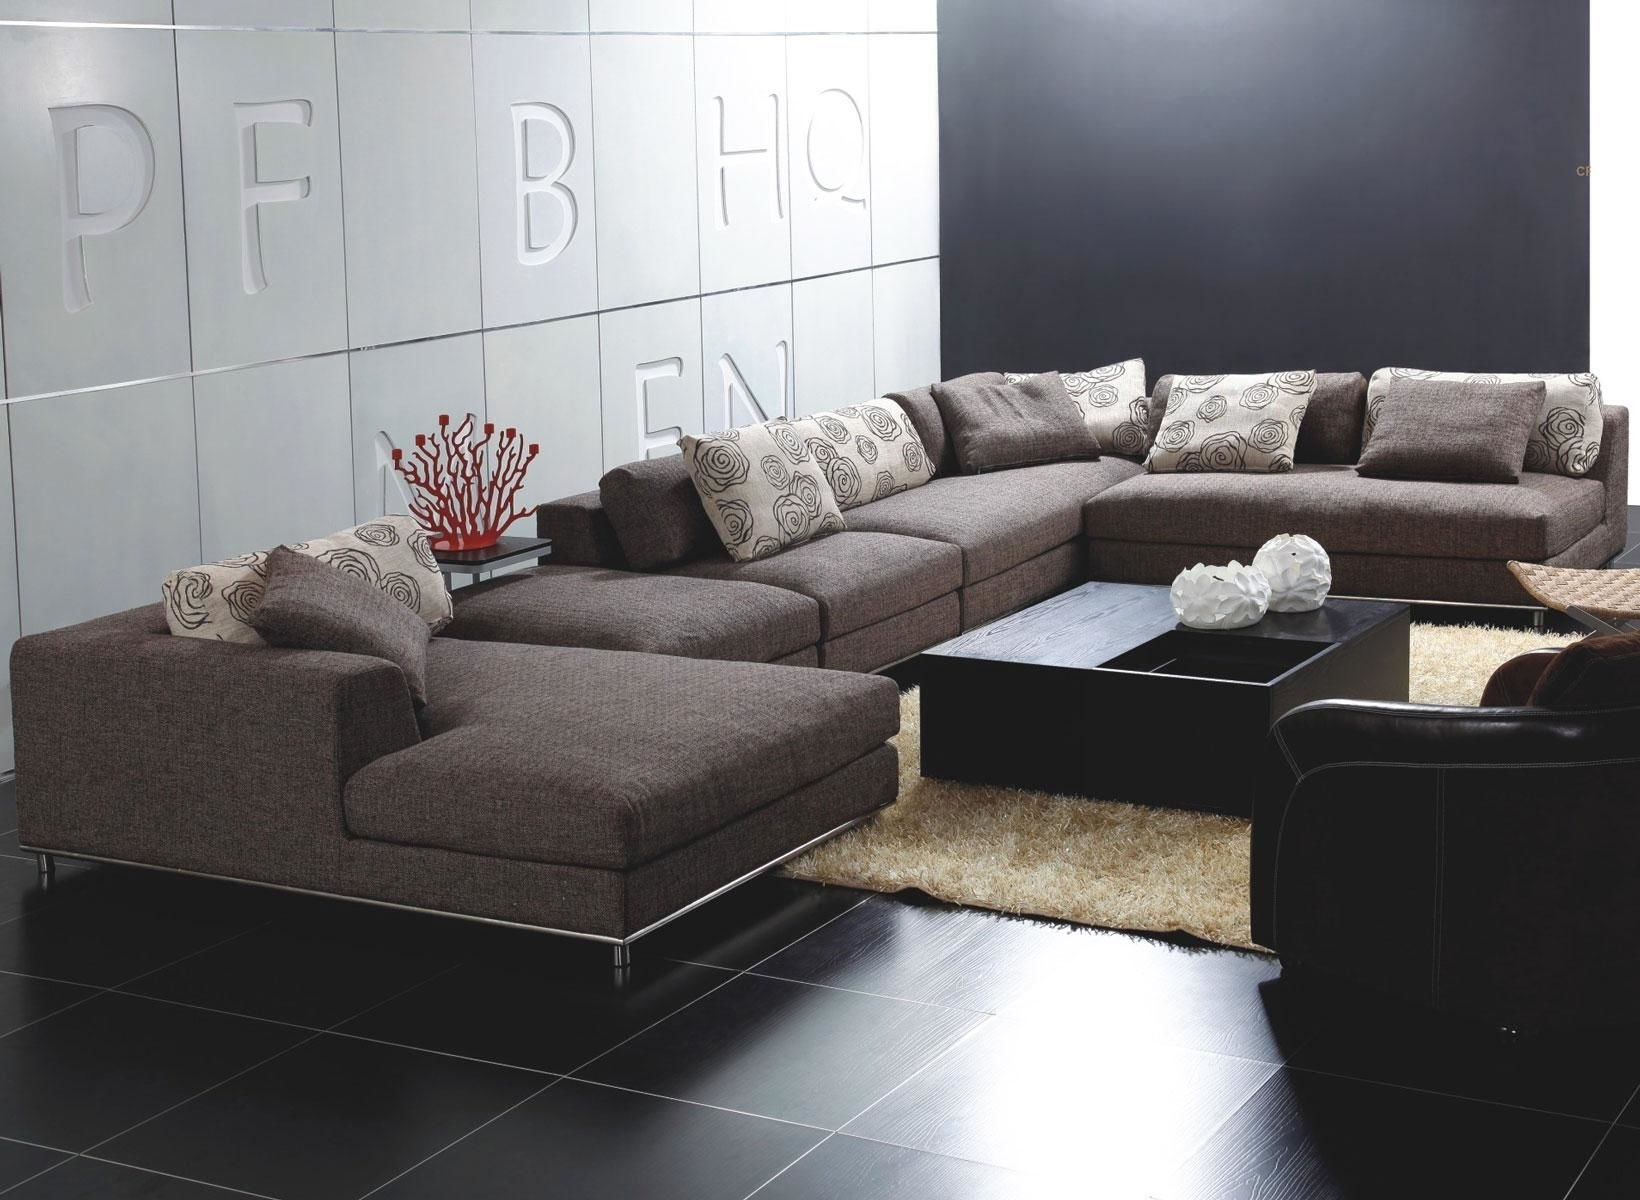 Brilliant Sectional Sofas Austin Tx – Buildsimplehome In Austin Sectional Sofas (View 8 of 10)